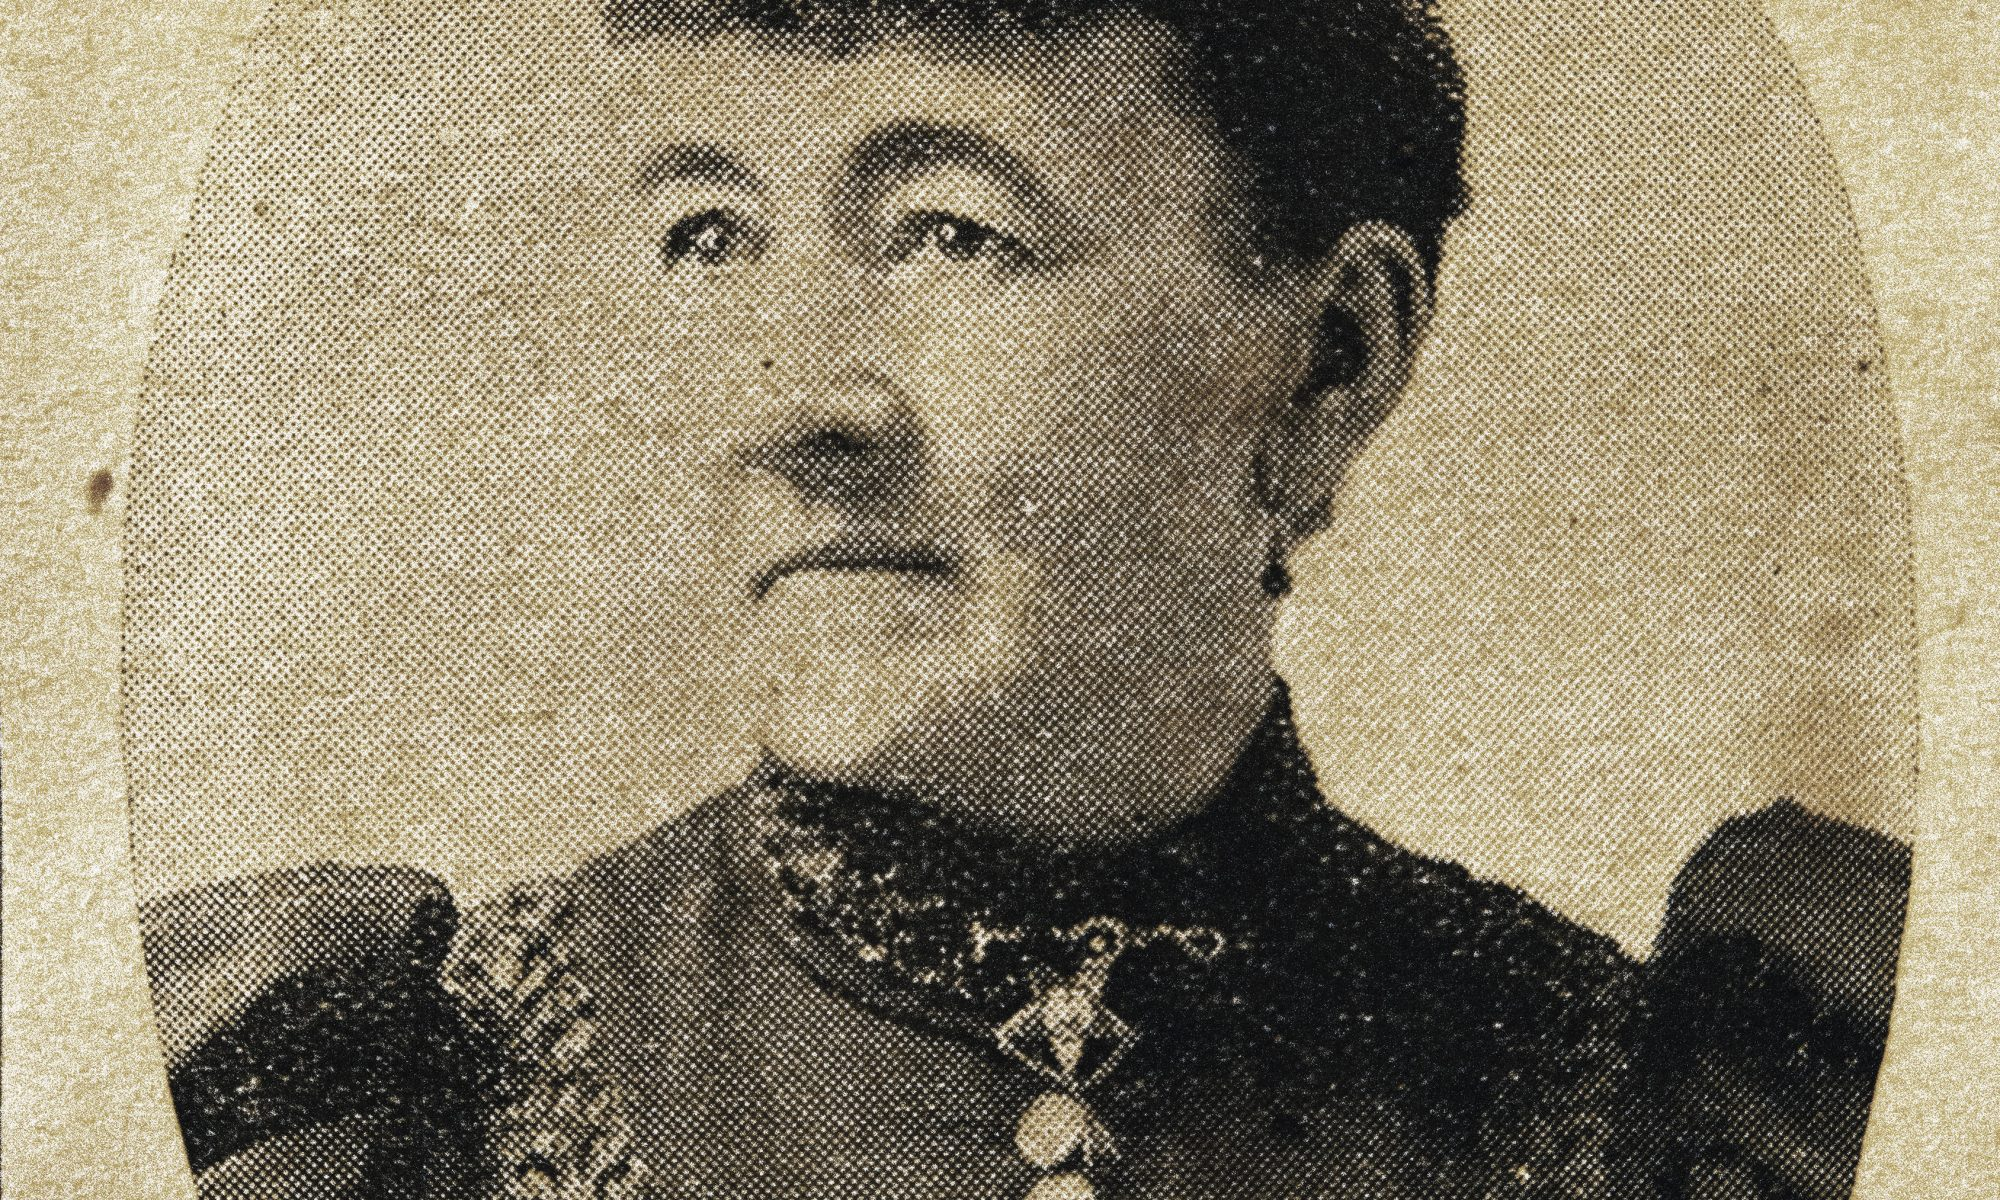 Photograph of Elizabeth C. Morgan in an 1895 newspaper